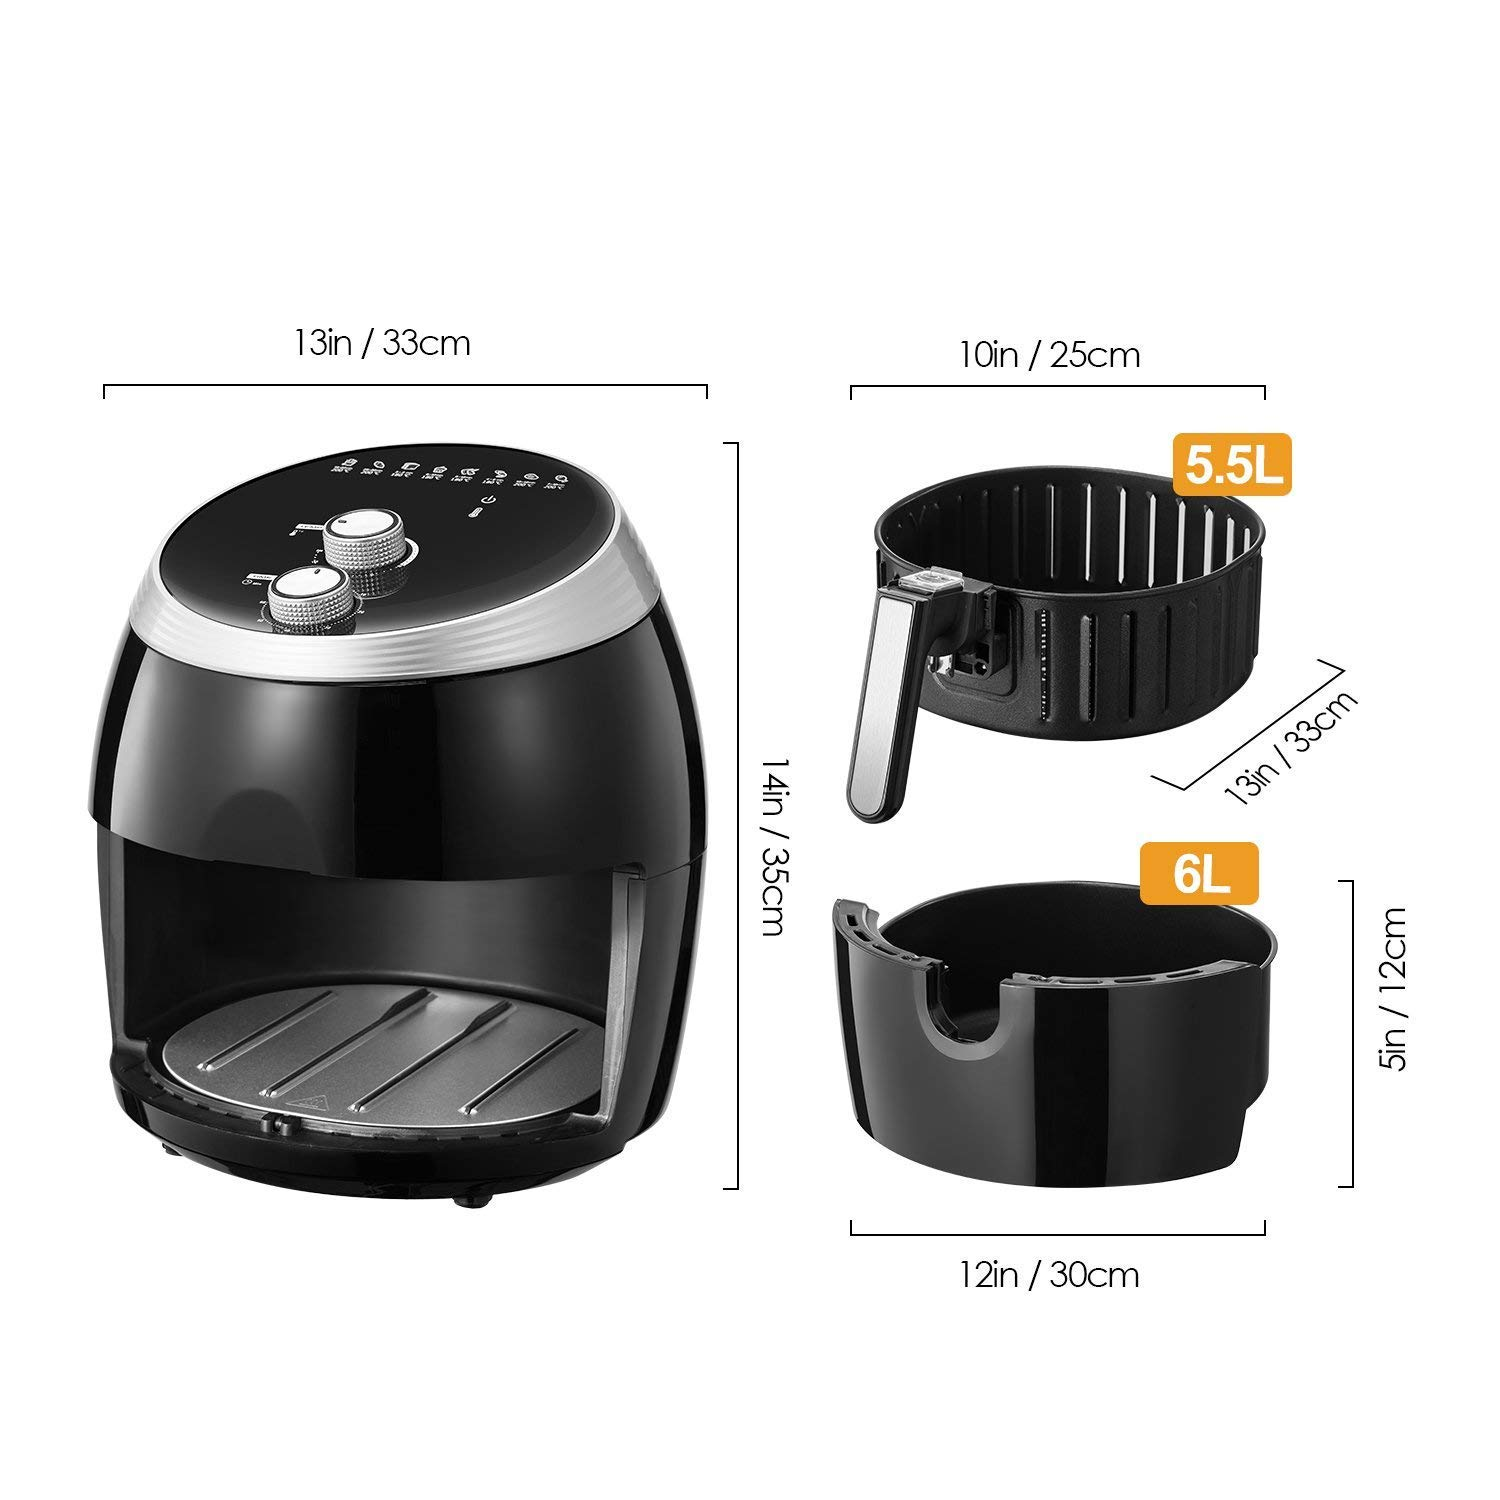 Air Fryer, Tidylife 6.3QT Large Air Fryer, 1700W Oilless XL Oven Cooker, Smart Time and Temperature Control, 7 Cooking Preset, 180-400℉Hot Air Fryer with Non-stick Basket, Auto Shut Off, 50+ Recipes by Tidylife (Image #7)